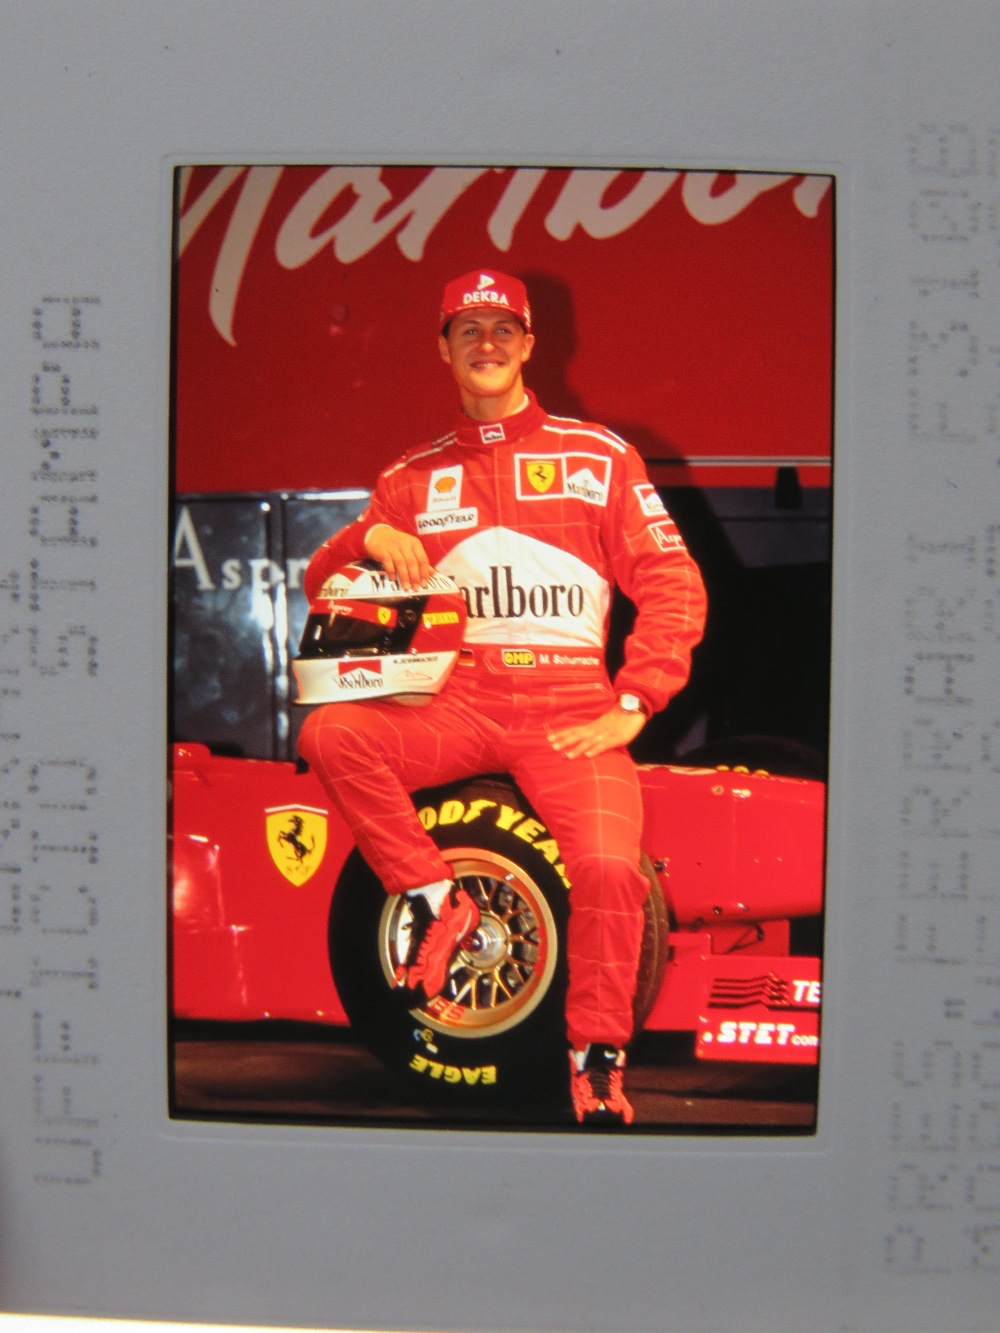 Lot 105 - Six assorted F1 themed VHS videos, toget